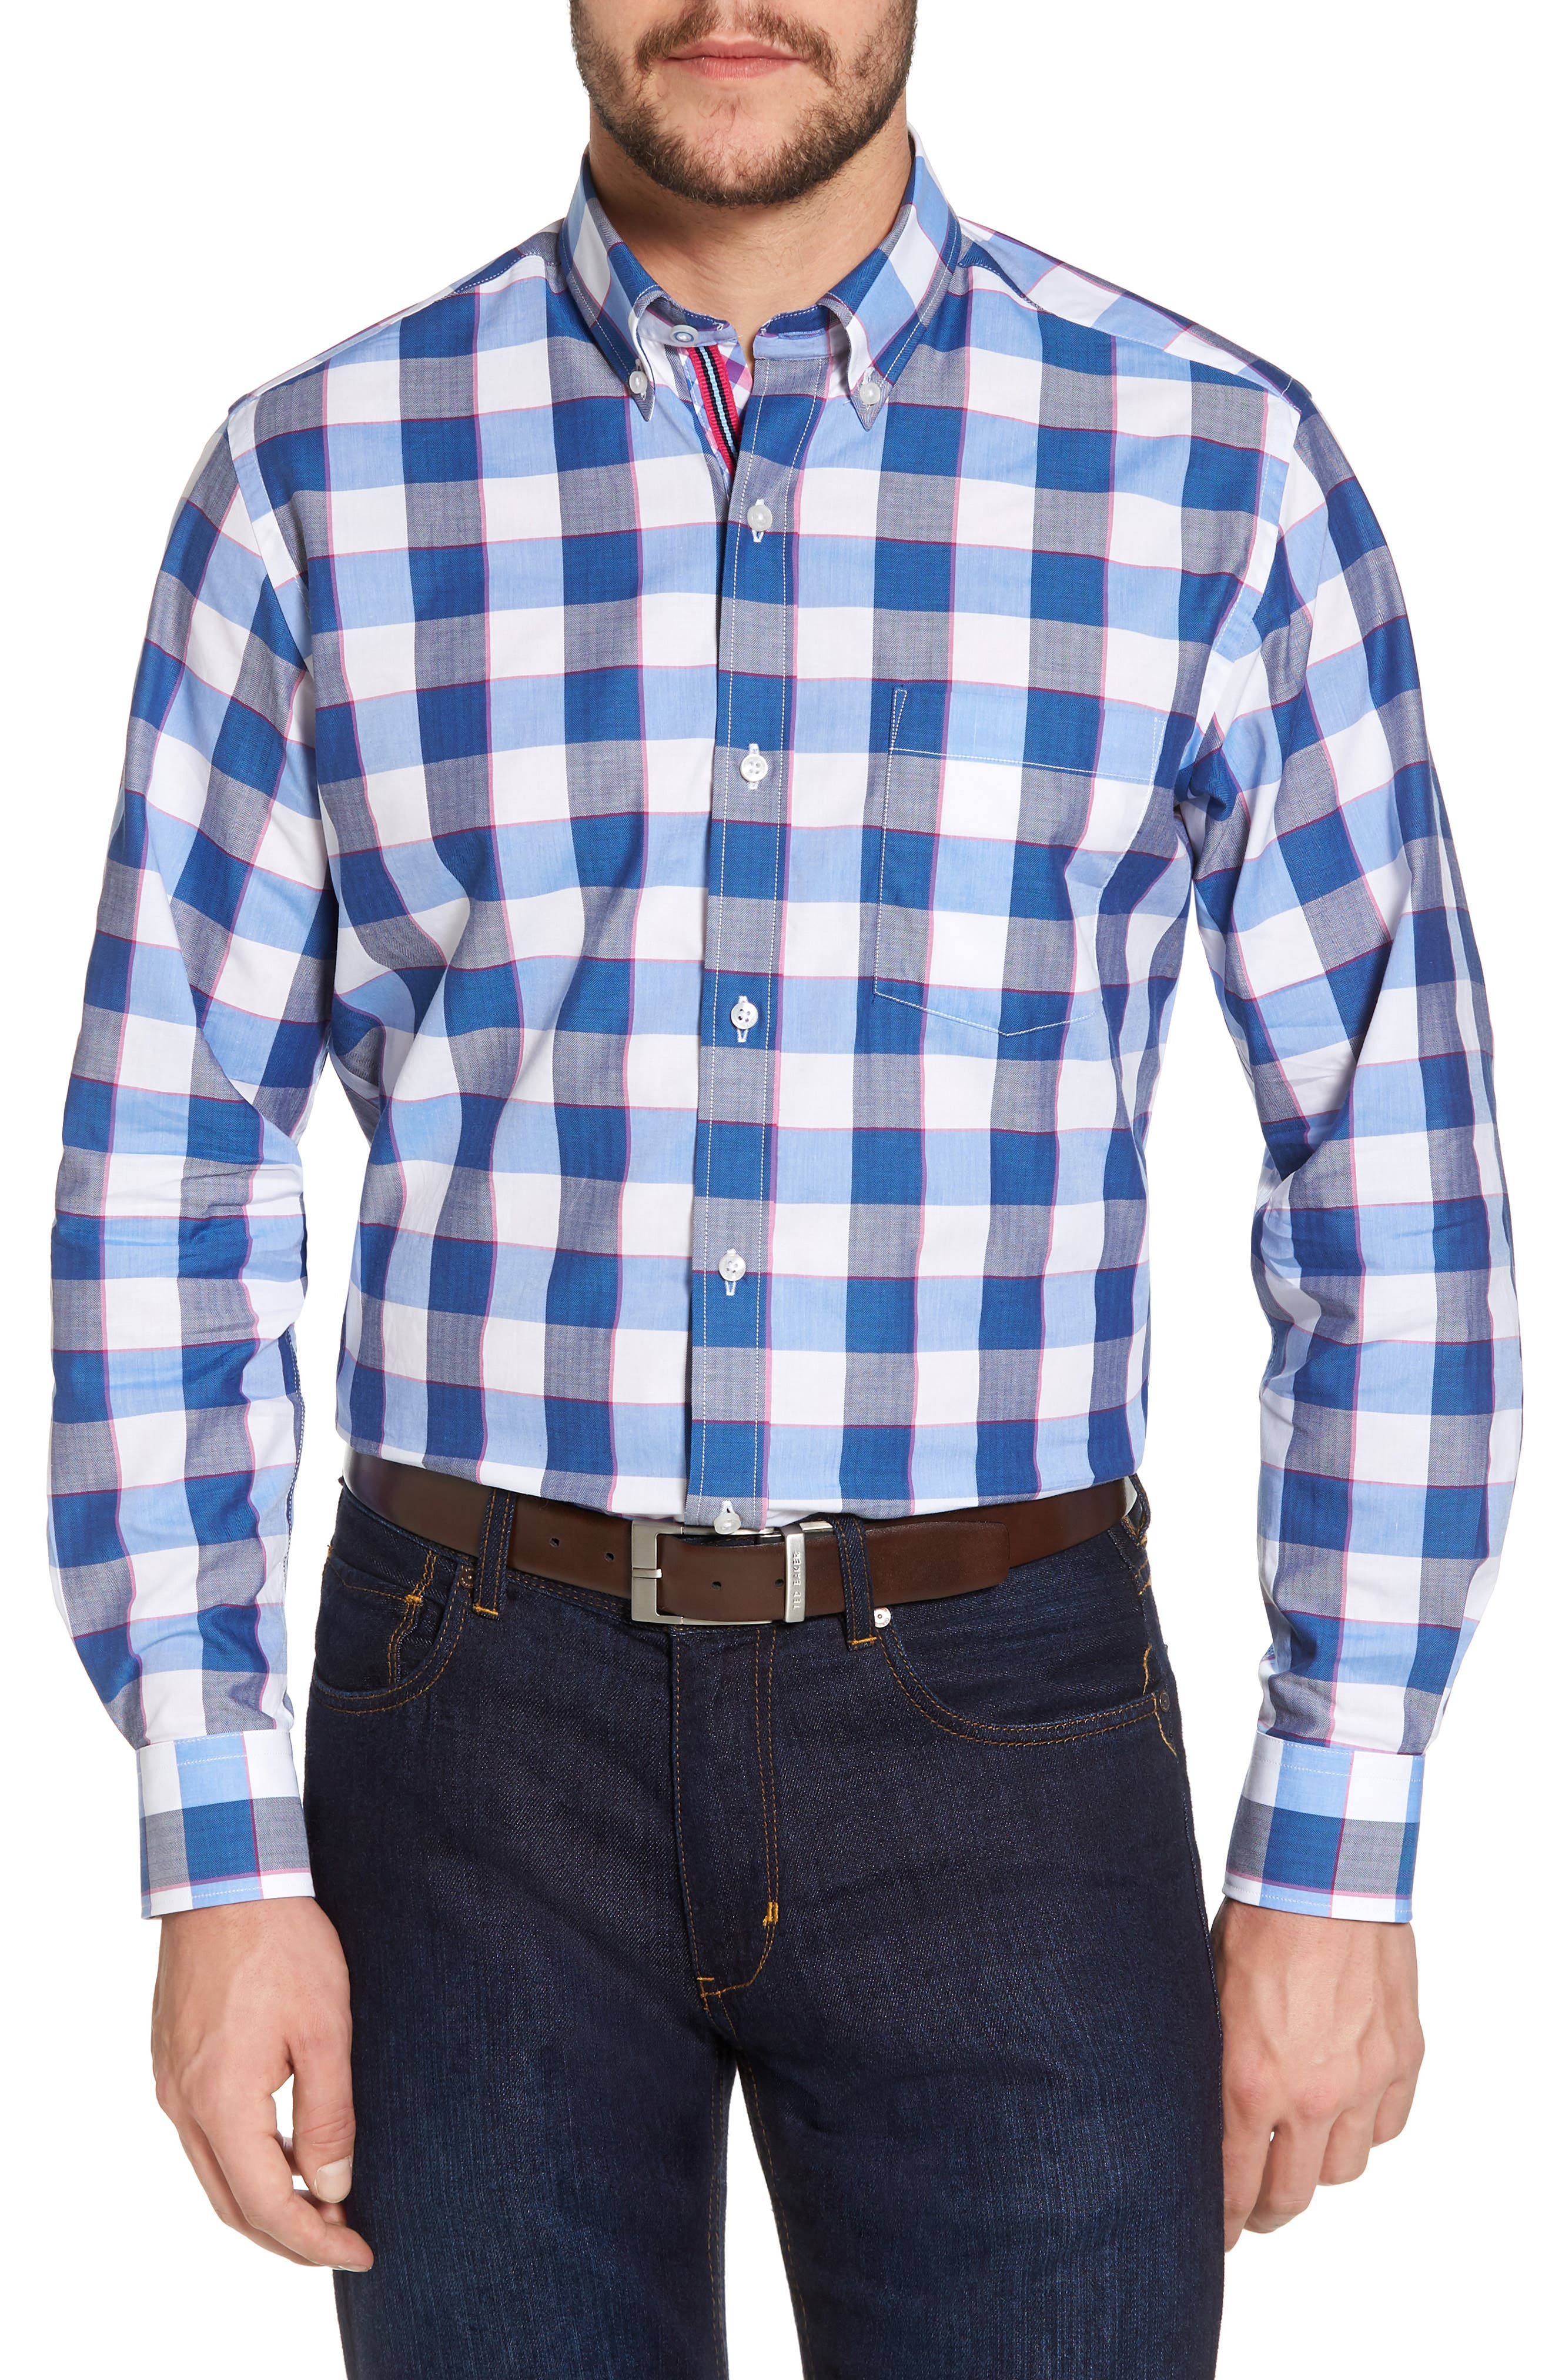 Jeremy Regular Fit Check Sport Shirt,                             Main thumbnail 1, color,